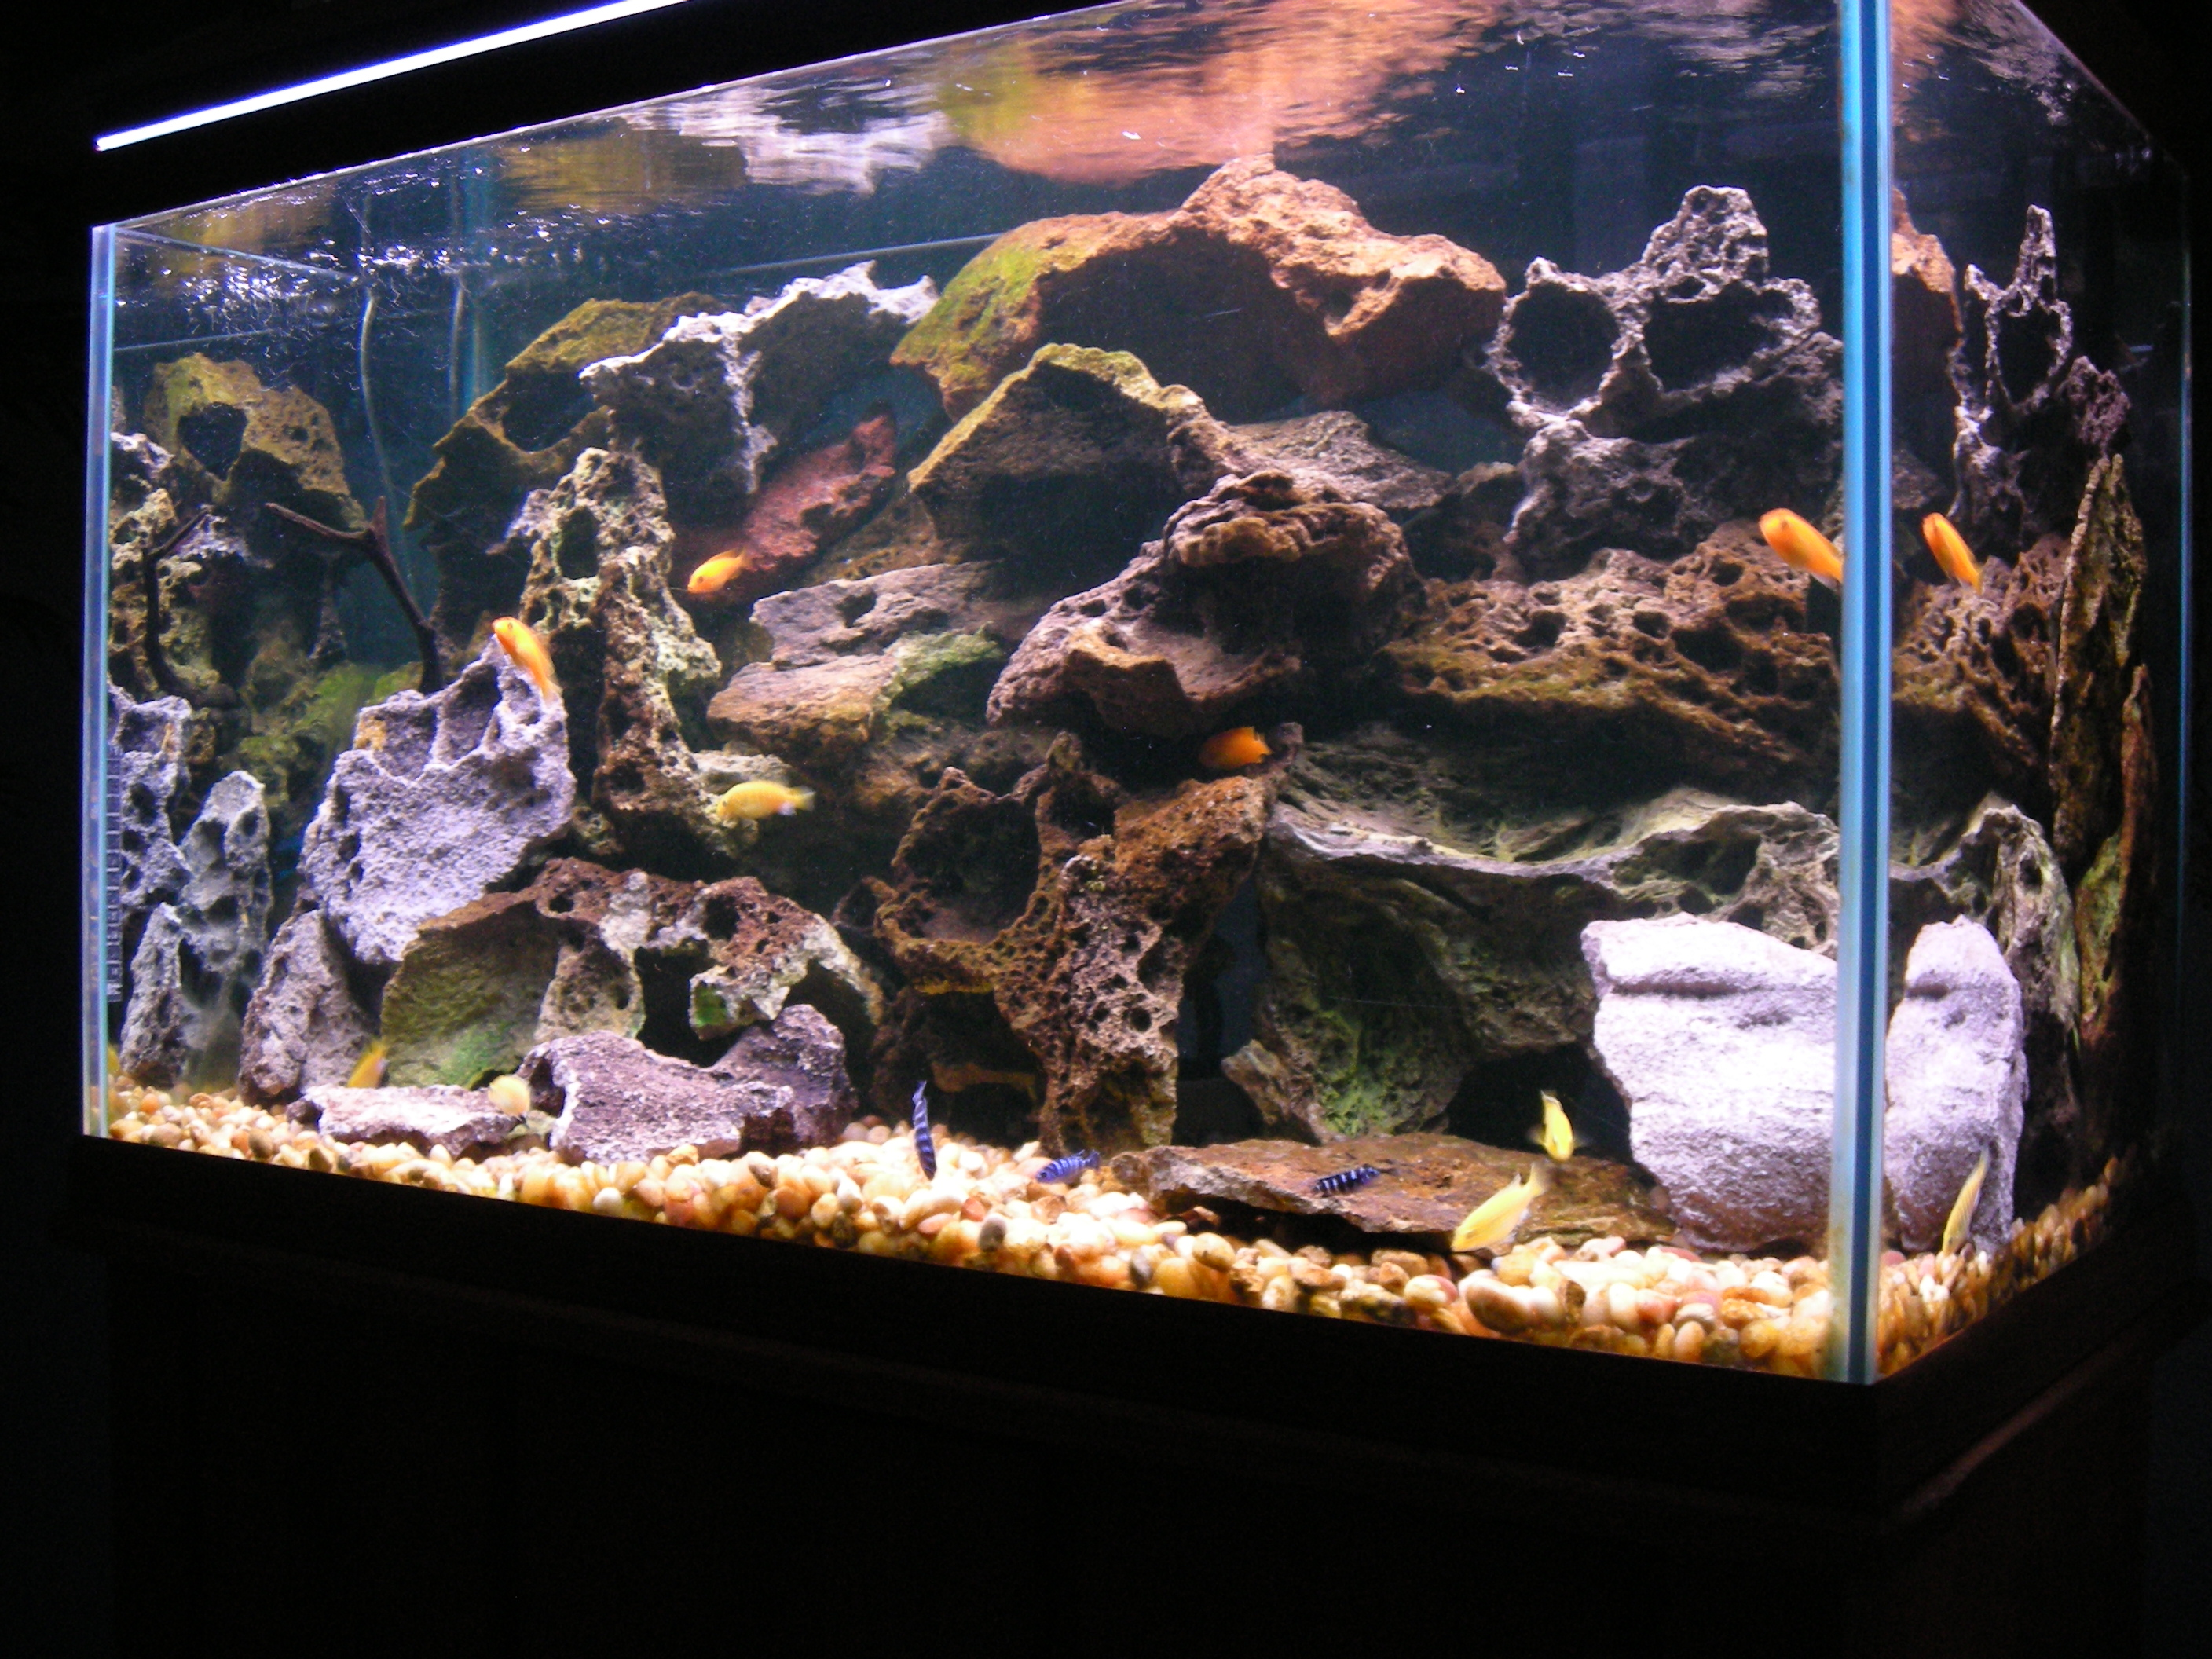 Tank examples 58 gallon lake malawi tank for African cichlid rock decoration